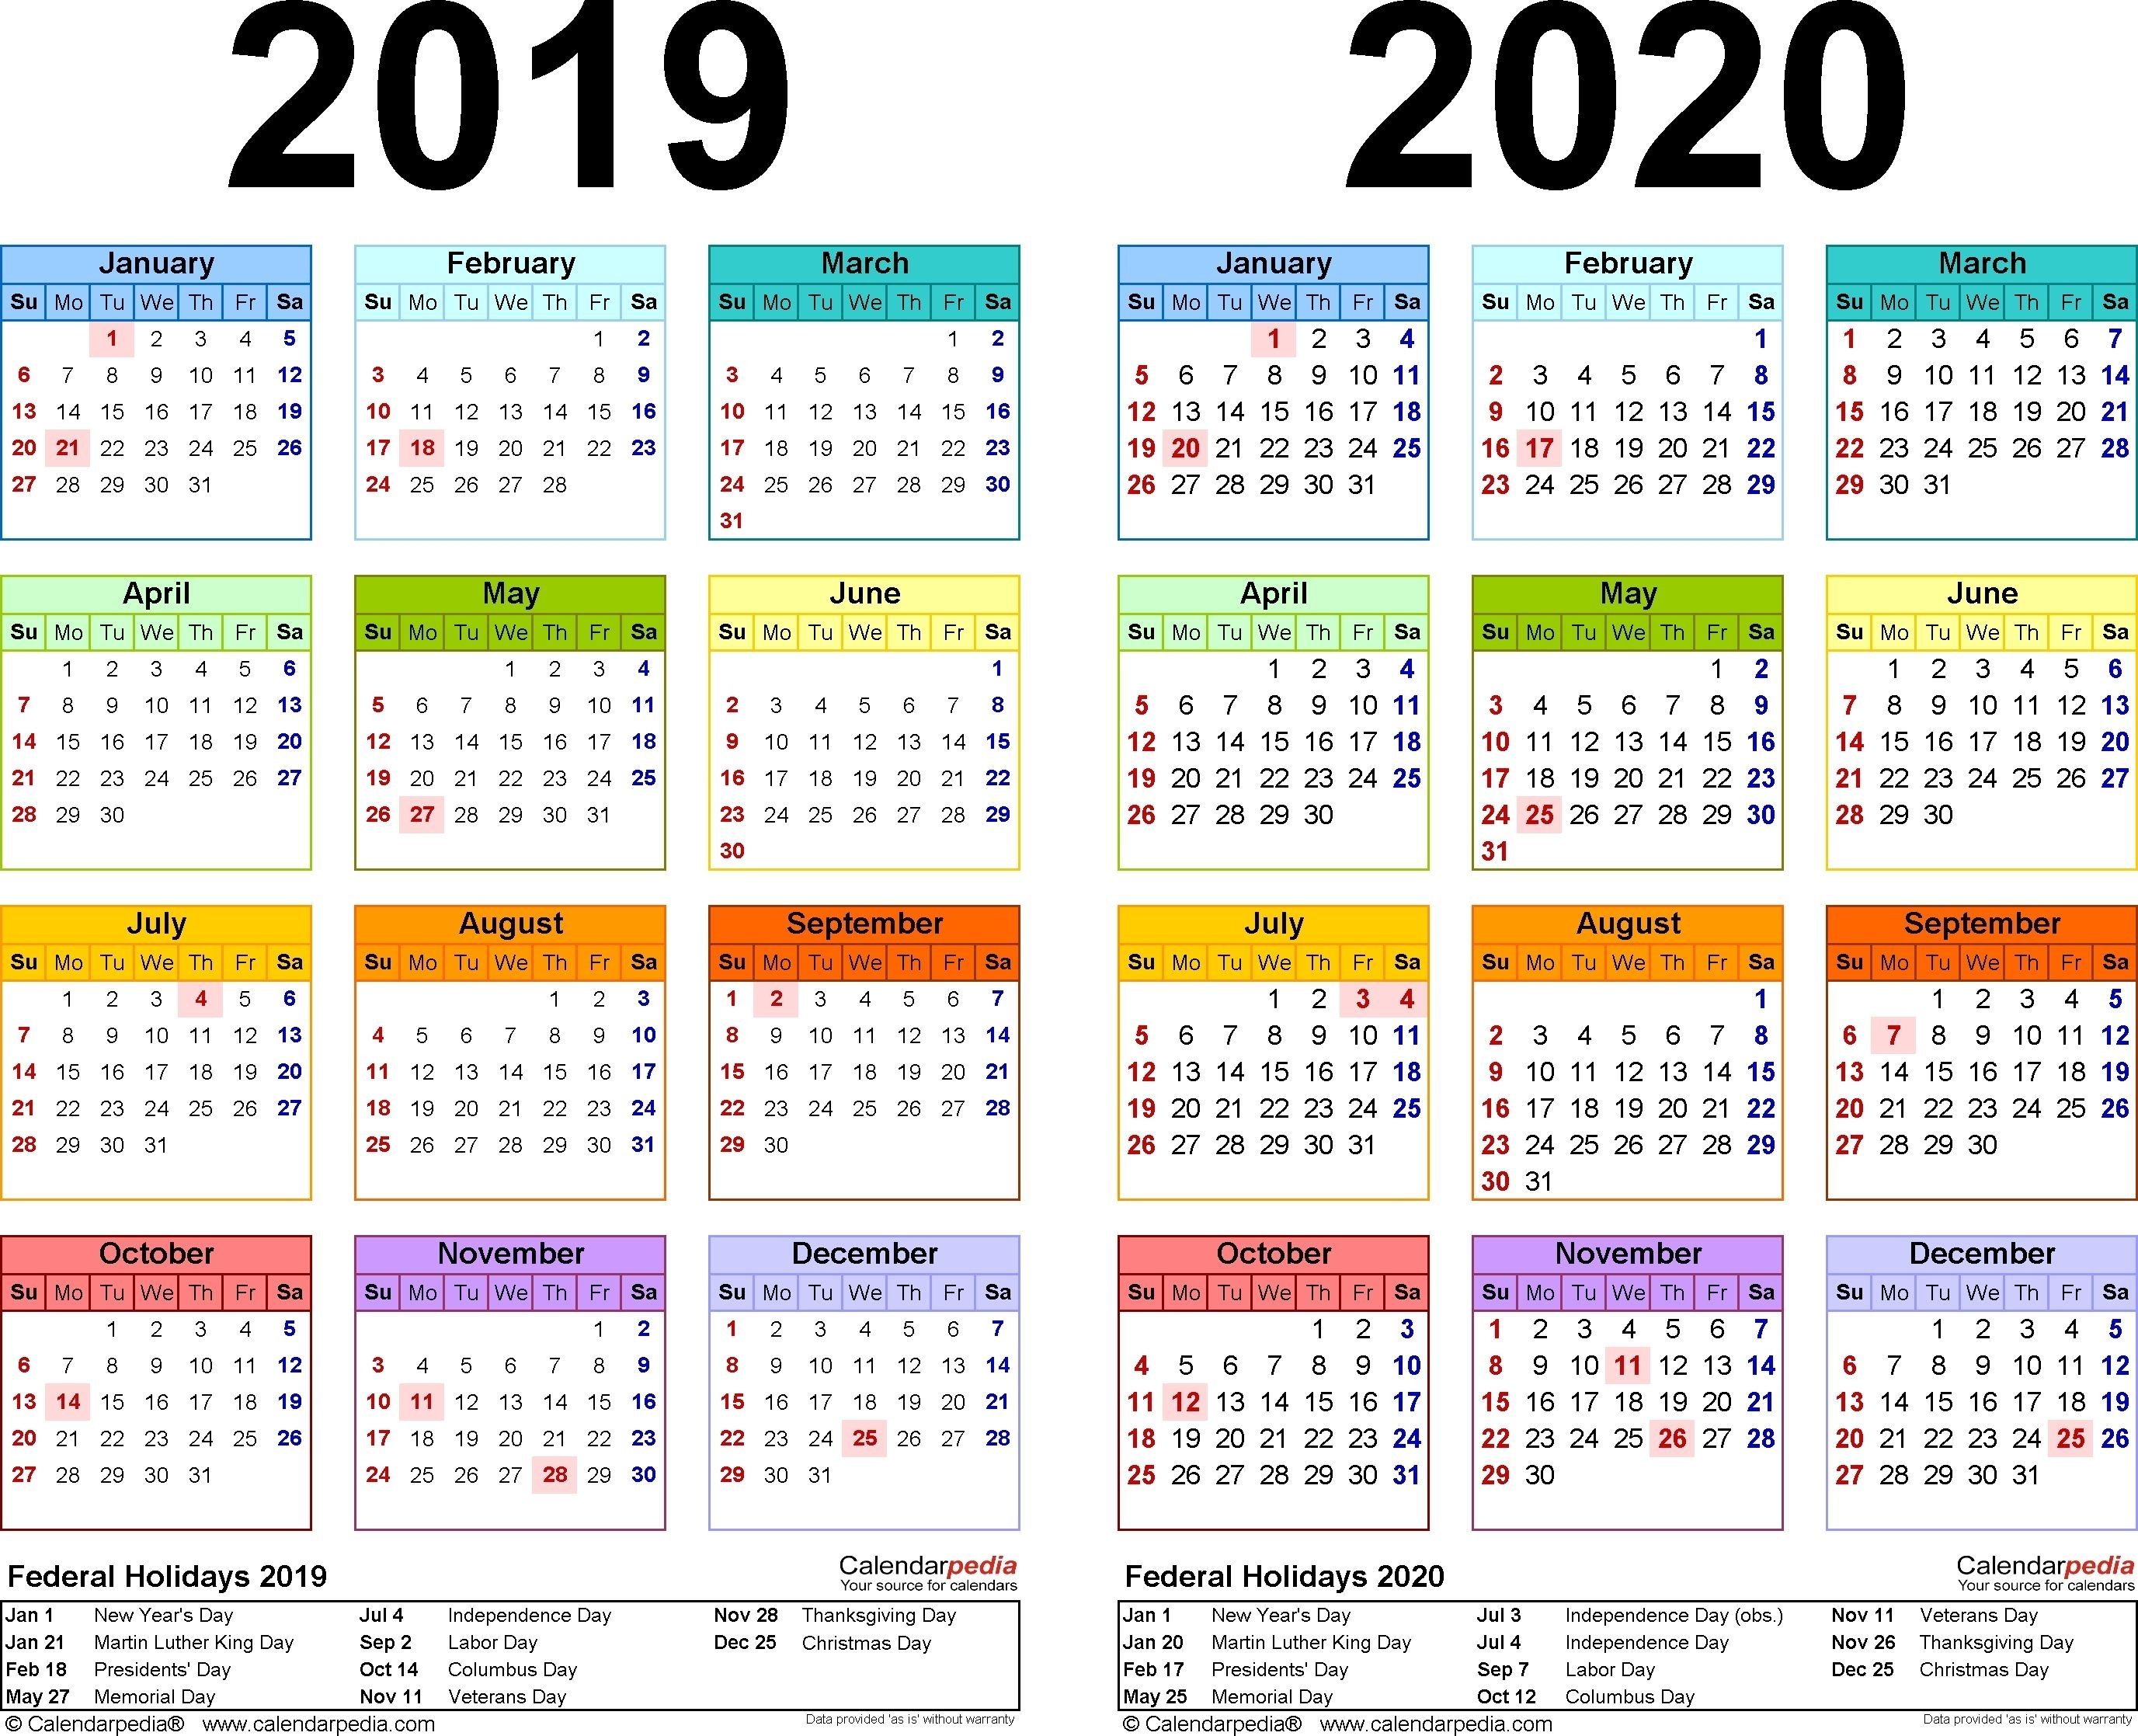 2019-2020 Calendar - Free Printable Two-Year Excel Calendars within Special Days In The Business Calendar 2020